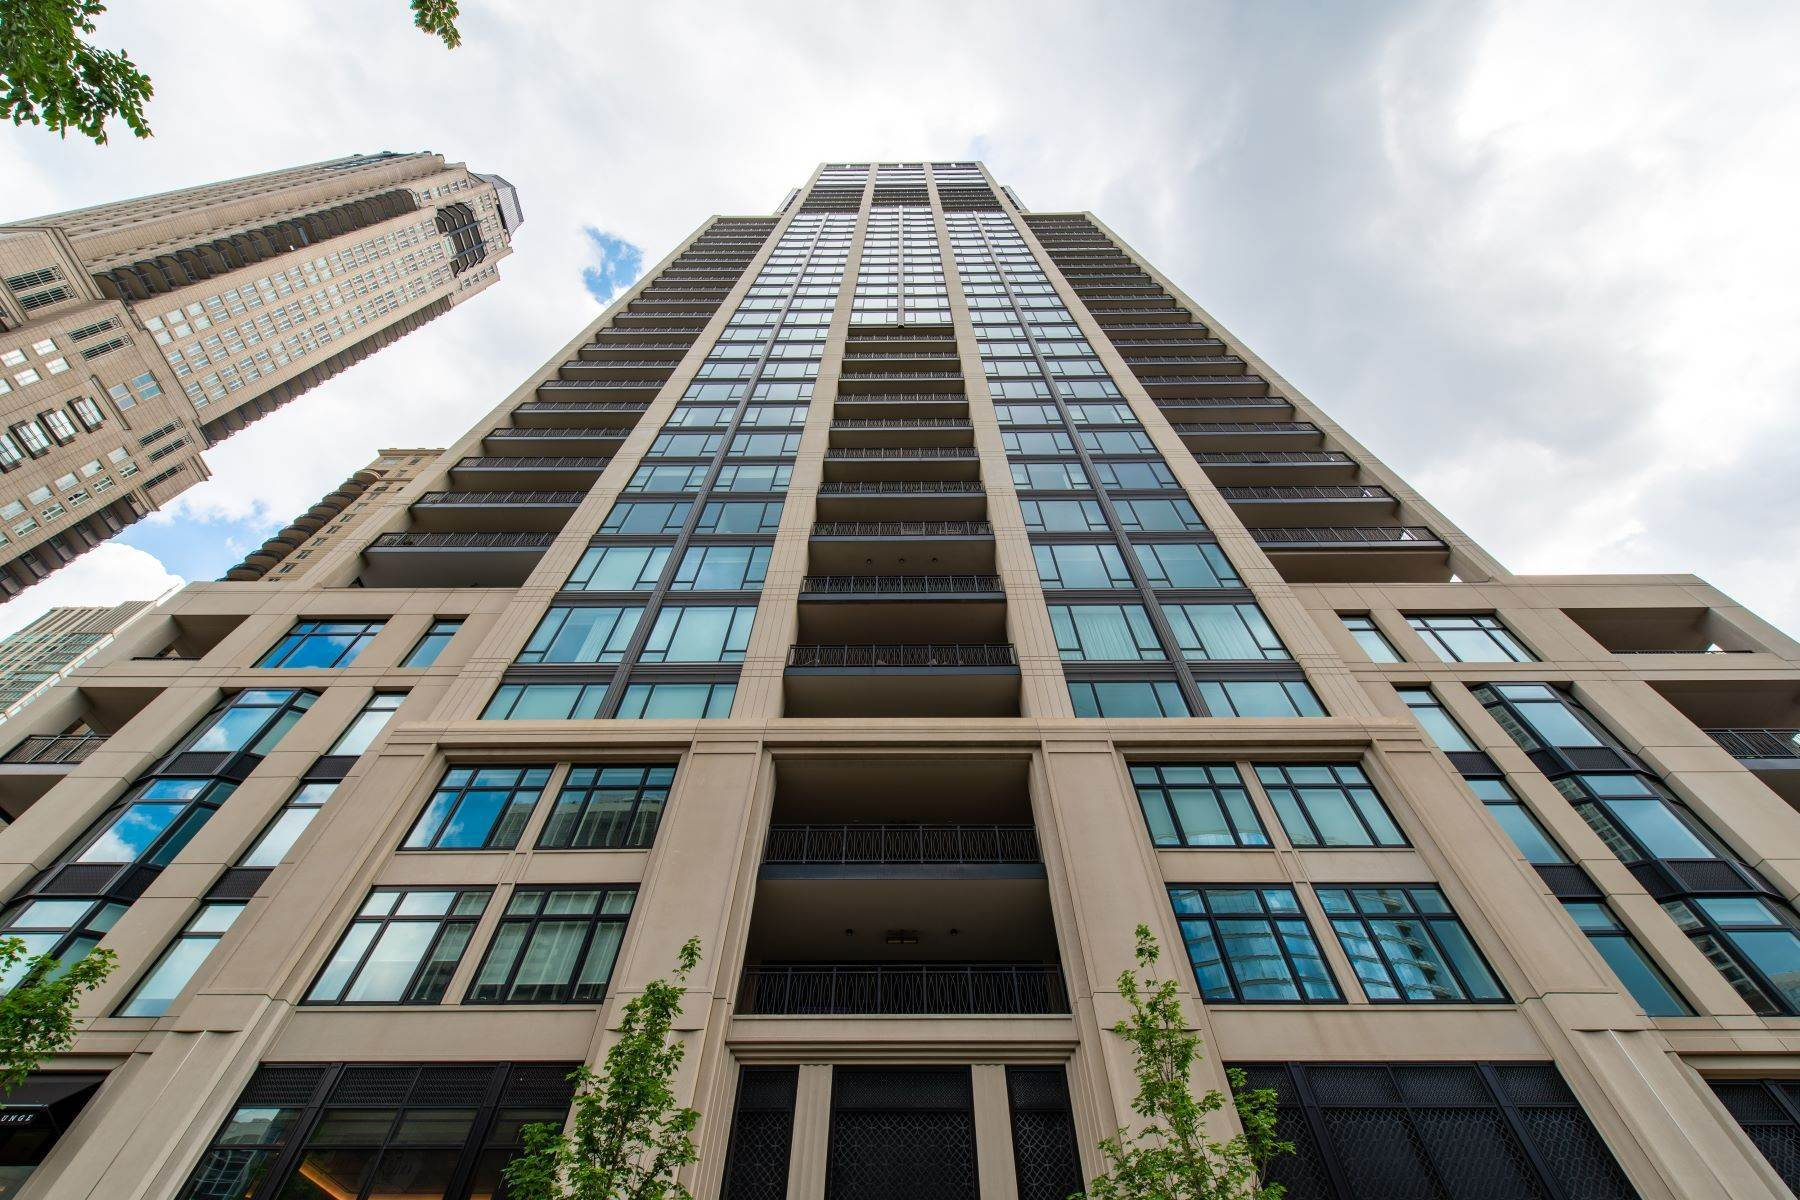 Property for Sale at The New Standard of Luxury Living is Here! 9 W Walton Street, Unit 2001 Chicago, Illinois 60610 United States